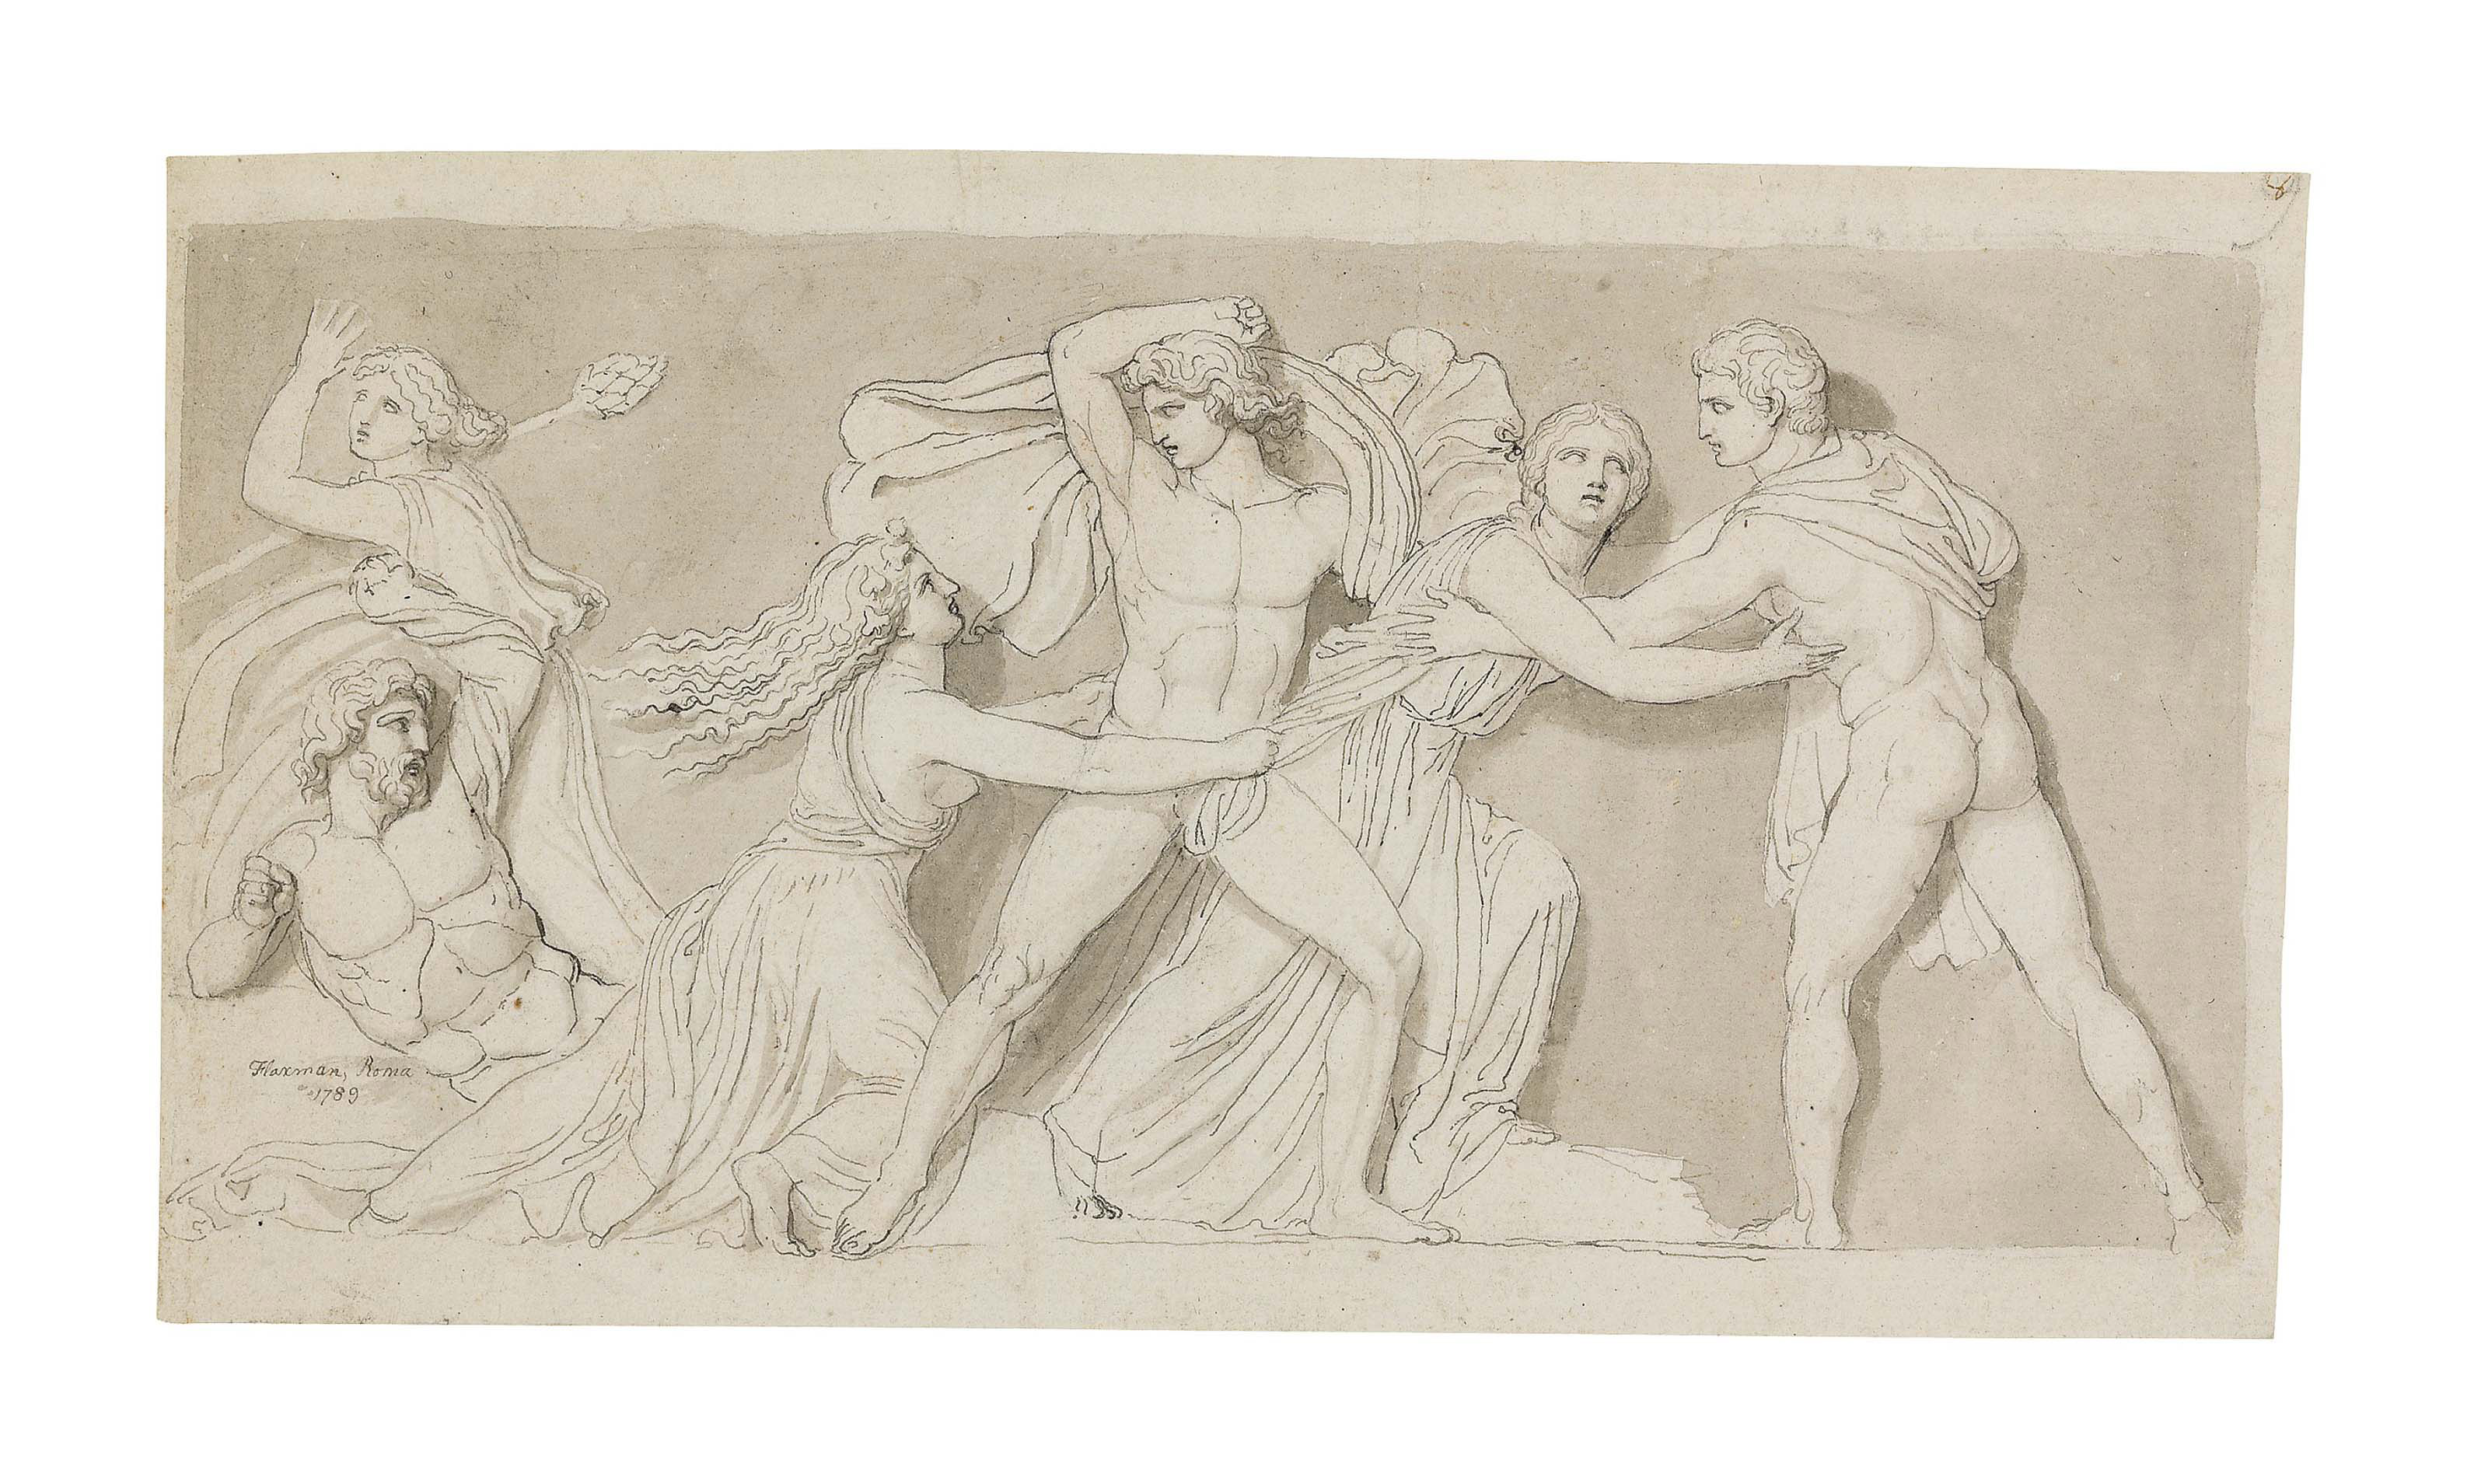 Designs for a classical relief